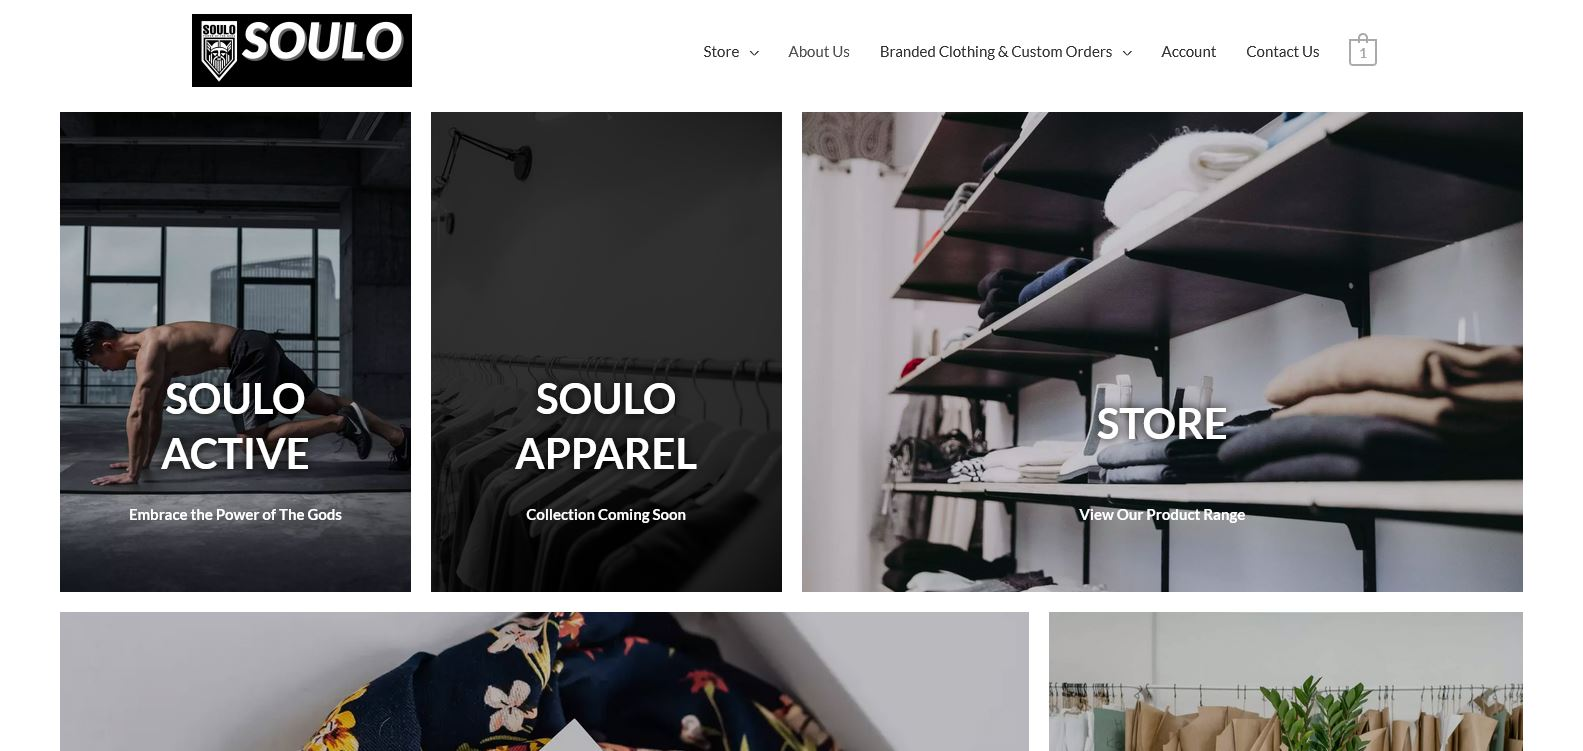 Web Design Project - Soulo Clothing Website